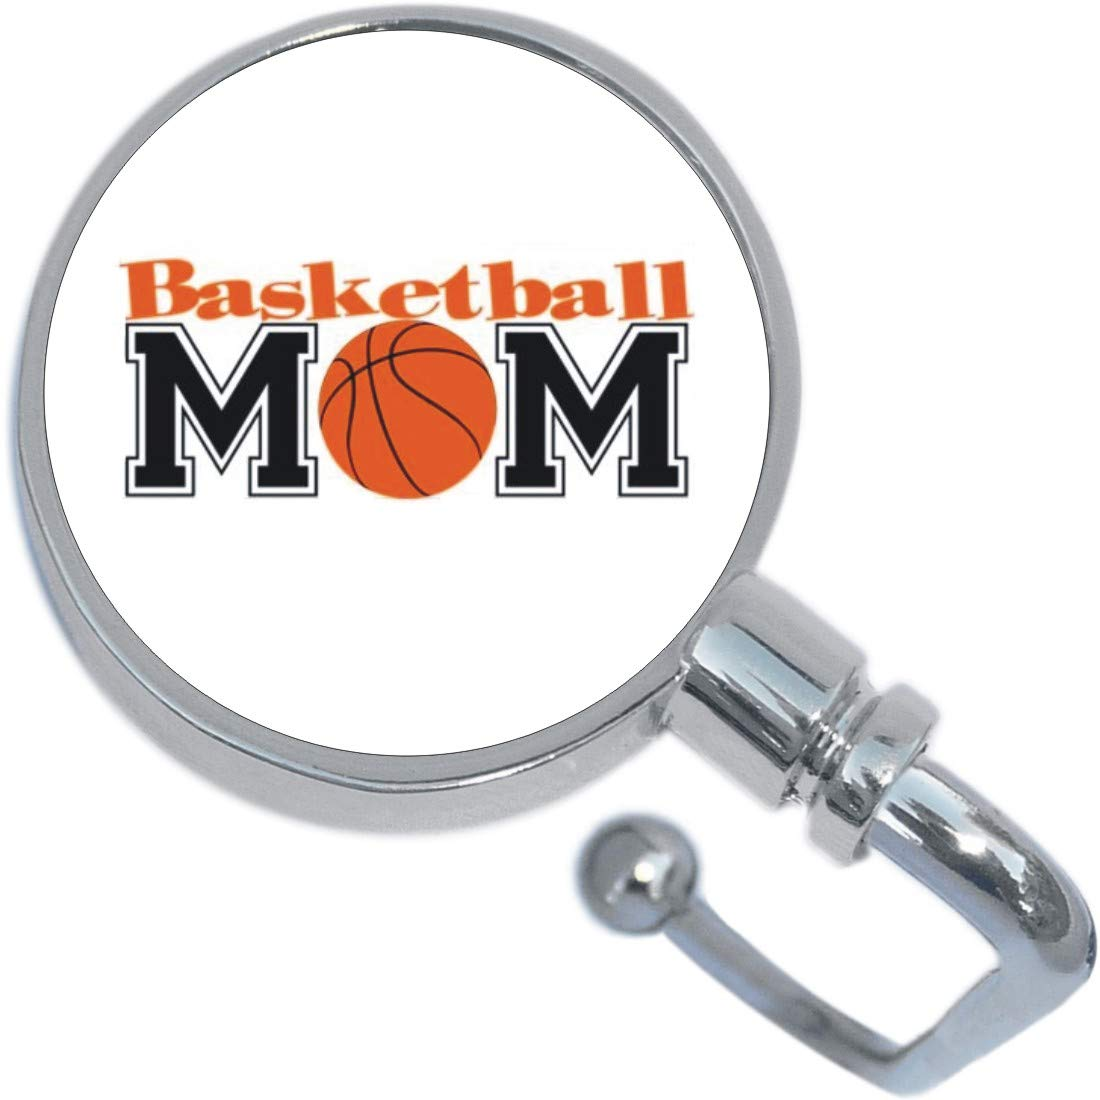 Basketball Mom Purse Hanger and Pouch